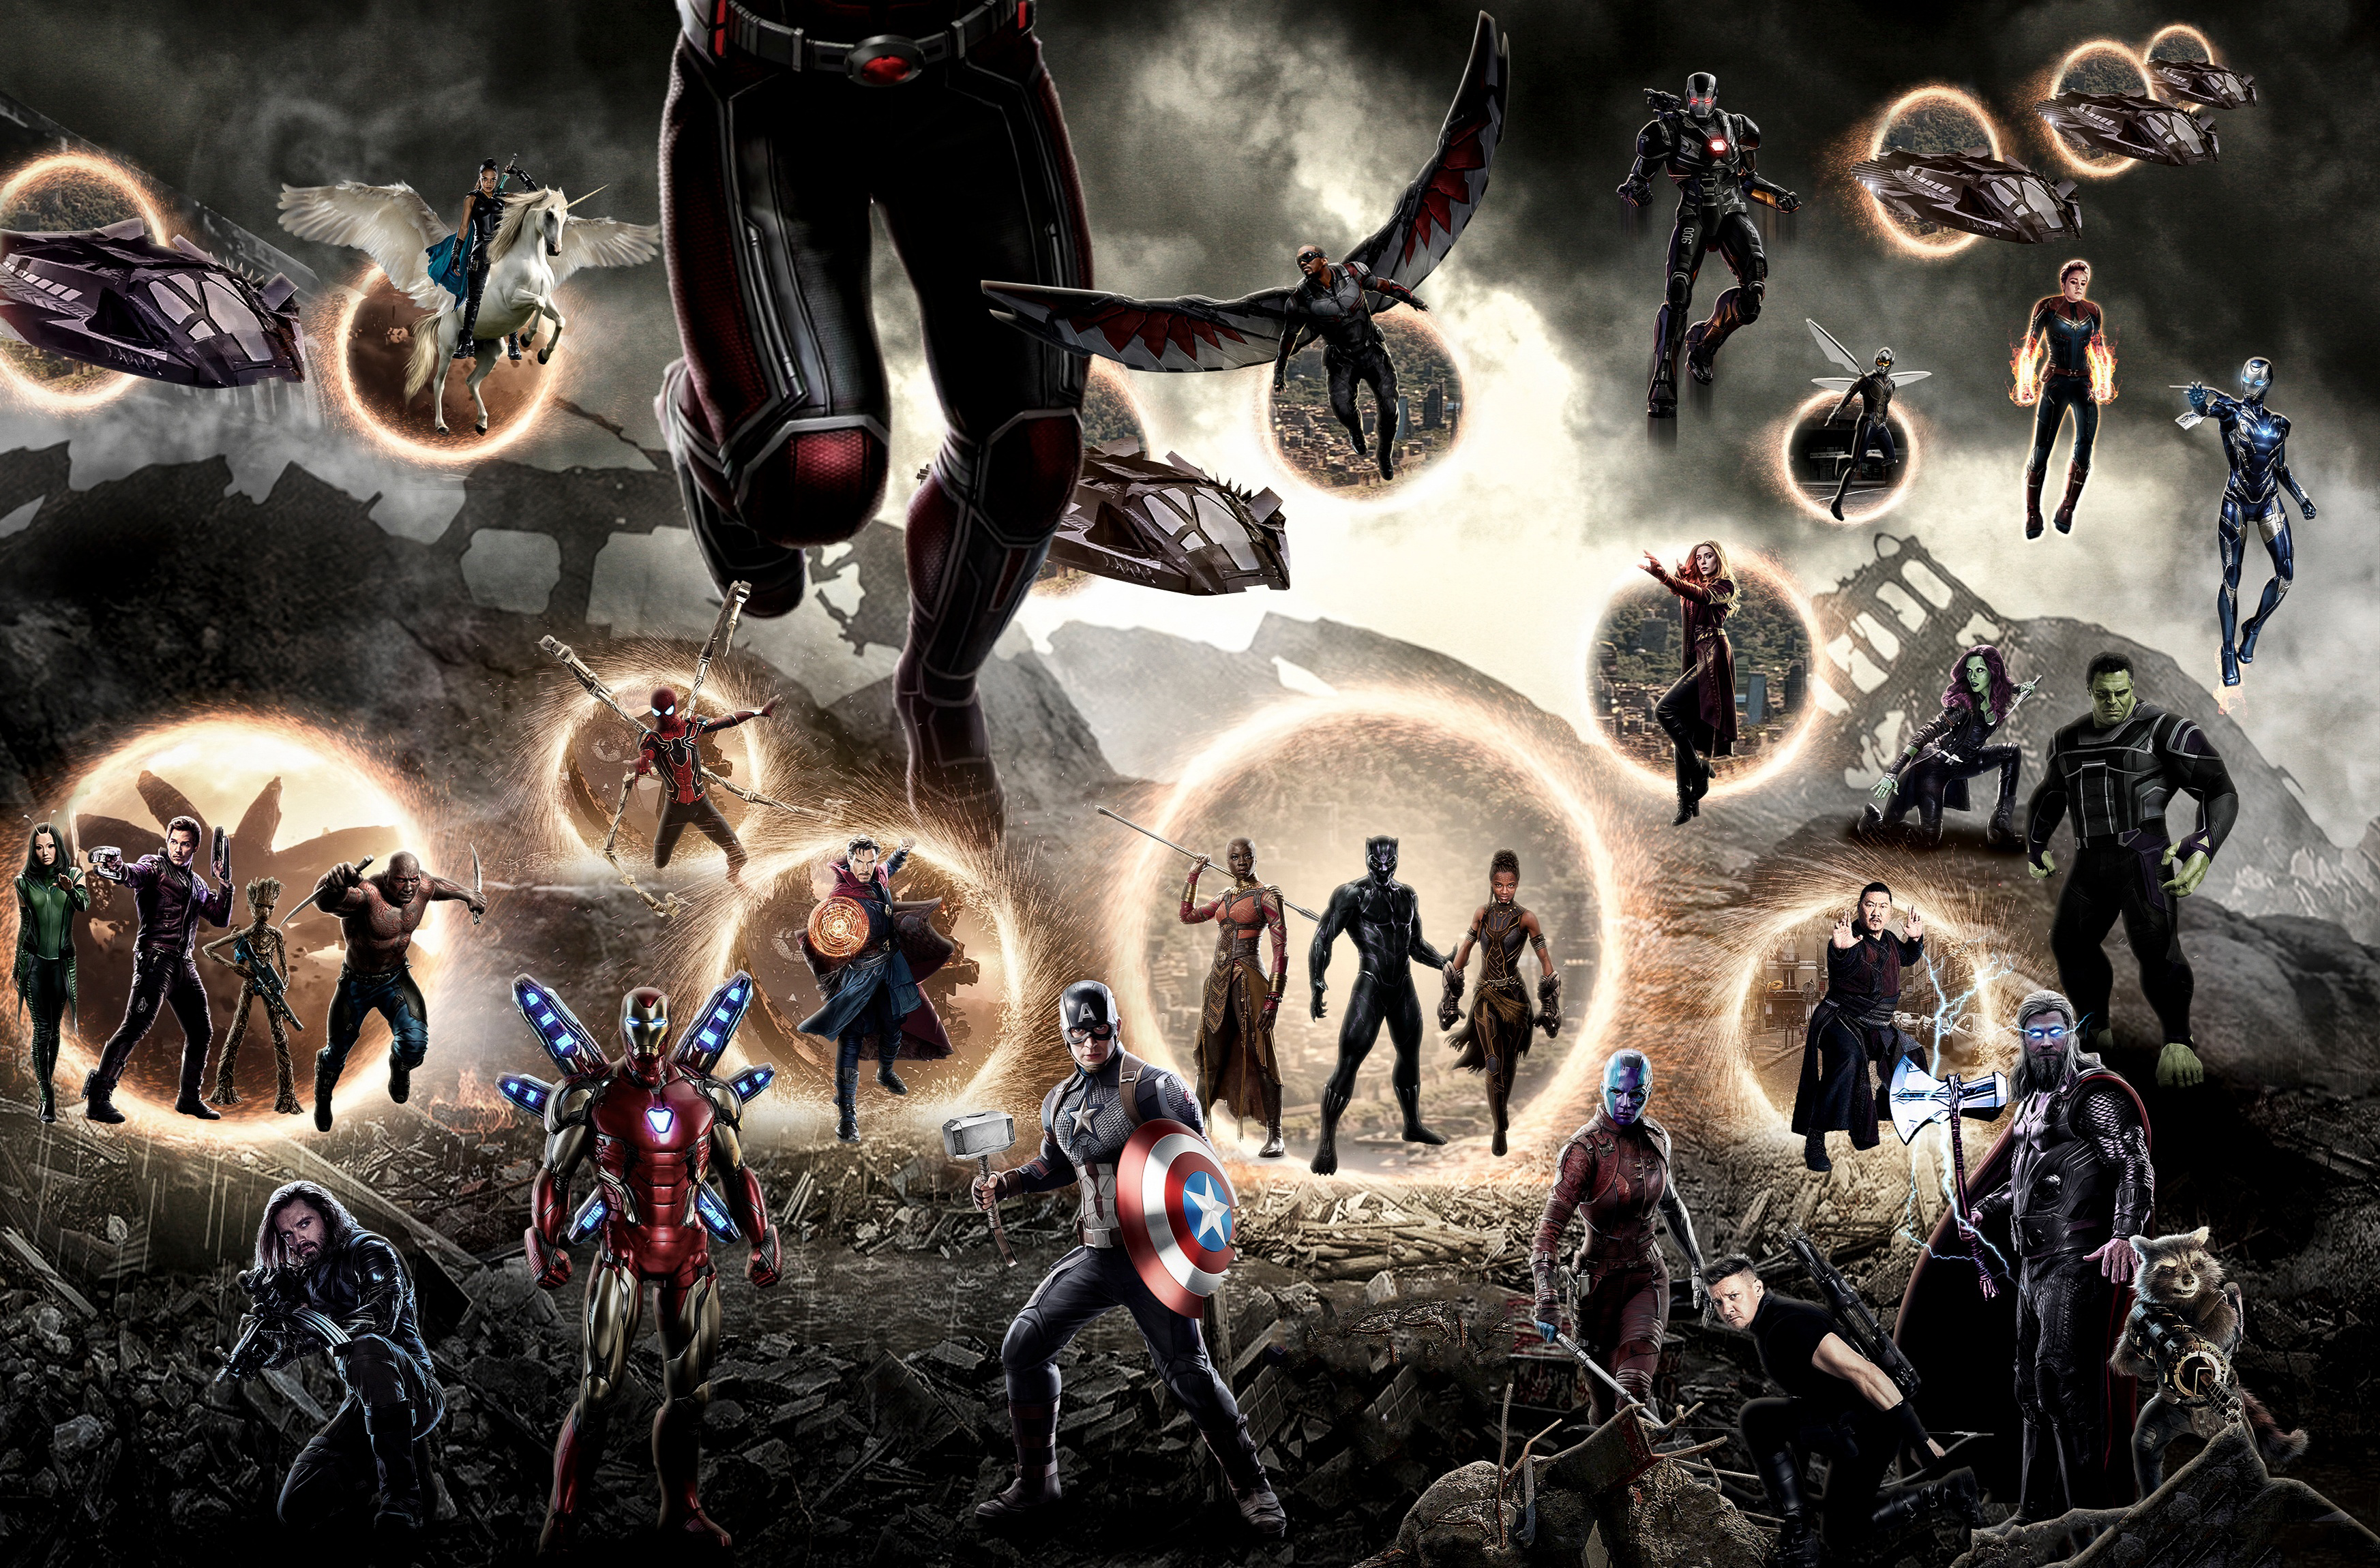 Avengers Endgame Final Battle 4k Hd Superheroes 4k Wallpapers Images Backgrounds Photos And Pictures